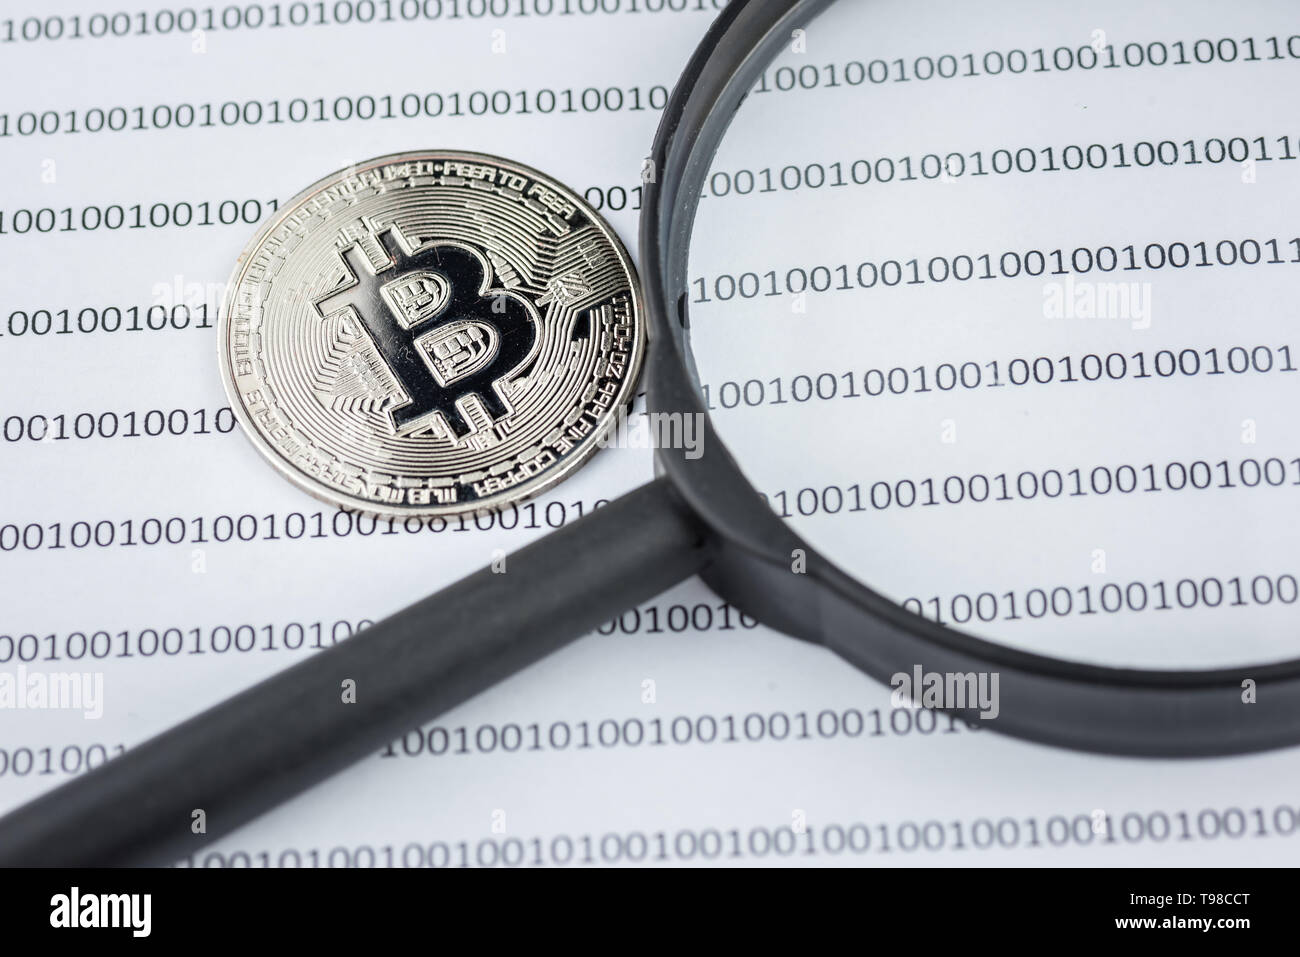 Magnifying glass over bitcoin, cryptocurrency physical coin on paper with binary system of zeros and ones.Virtual cryptocurrency concept.Concept image Stock Photo